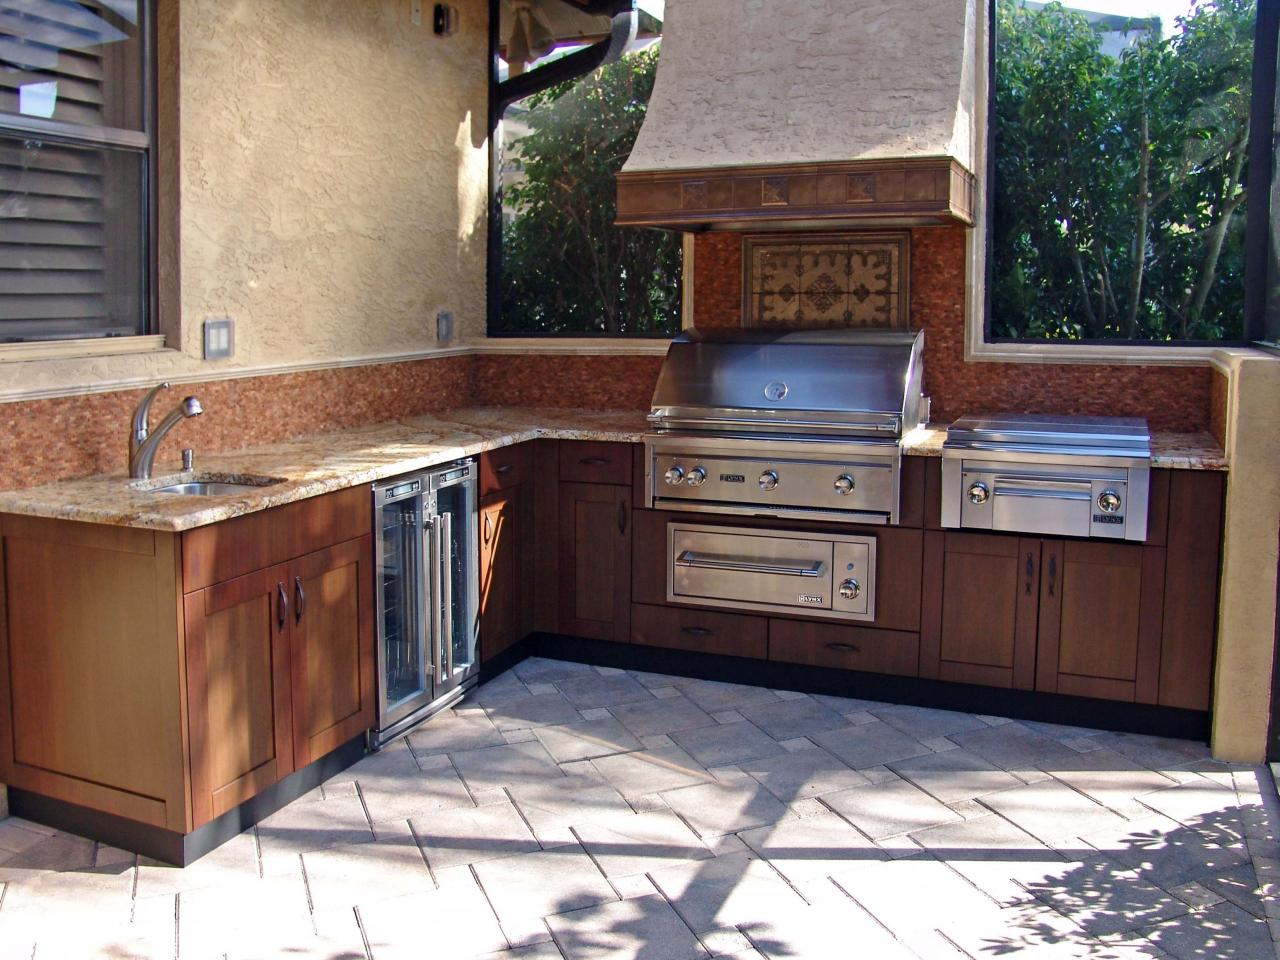 Stunning Outdoor Kitchen Cabinet Ideas: Pictures, Tips u0026 Expert Advice | HGTV outdoor kitchen cabinets